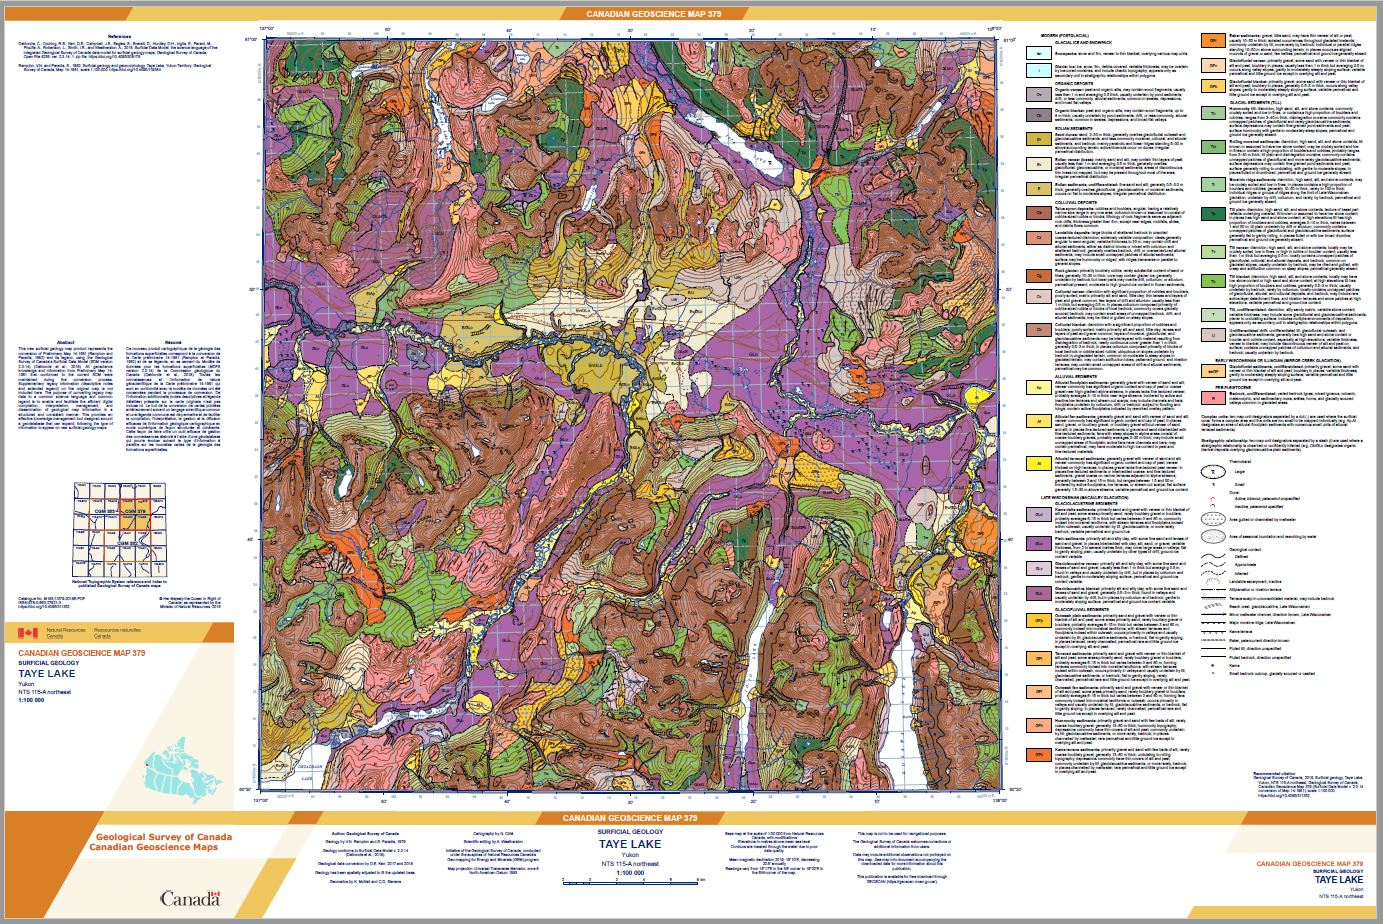 Surficial geology Taye Lake Yukon NTS 115-A northeast